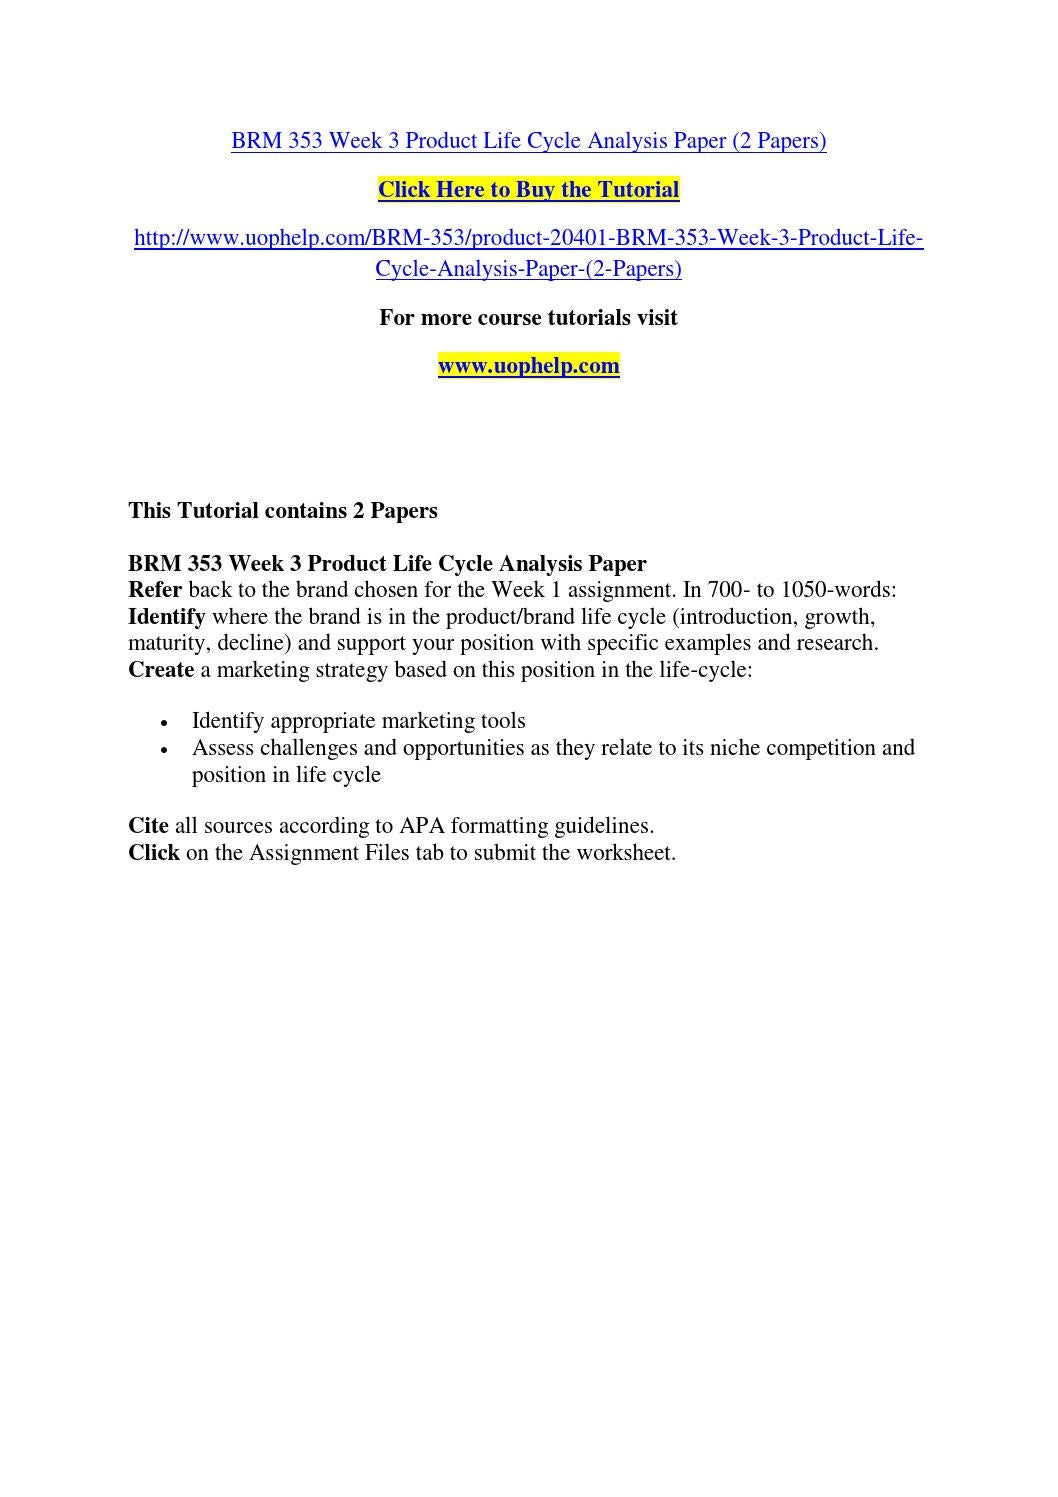 Worksheets Product Life Cycle Worksheet brm 353 week 3 product life cycle analysis paper 2 papers by dahlia82 issuu